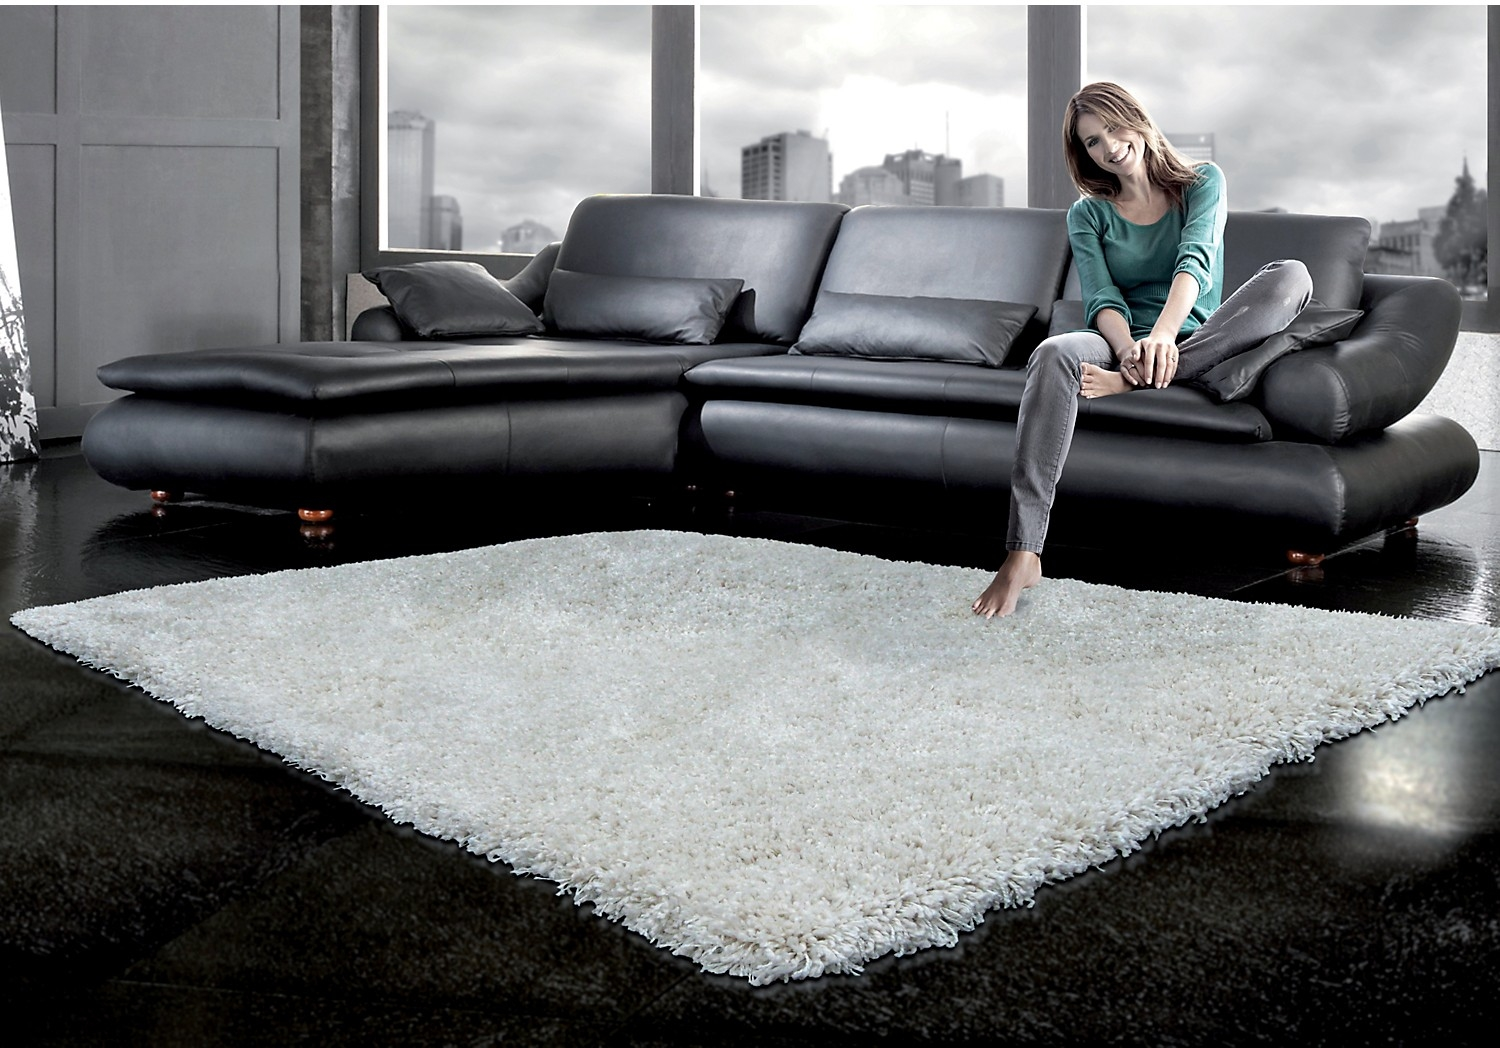 Loft shag area rug 5 x 8 off white freedom rent to own - White living room rug ...